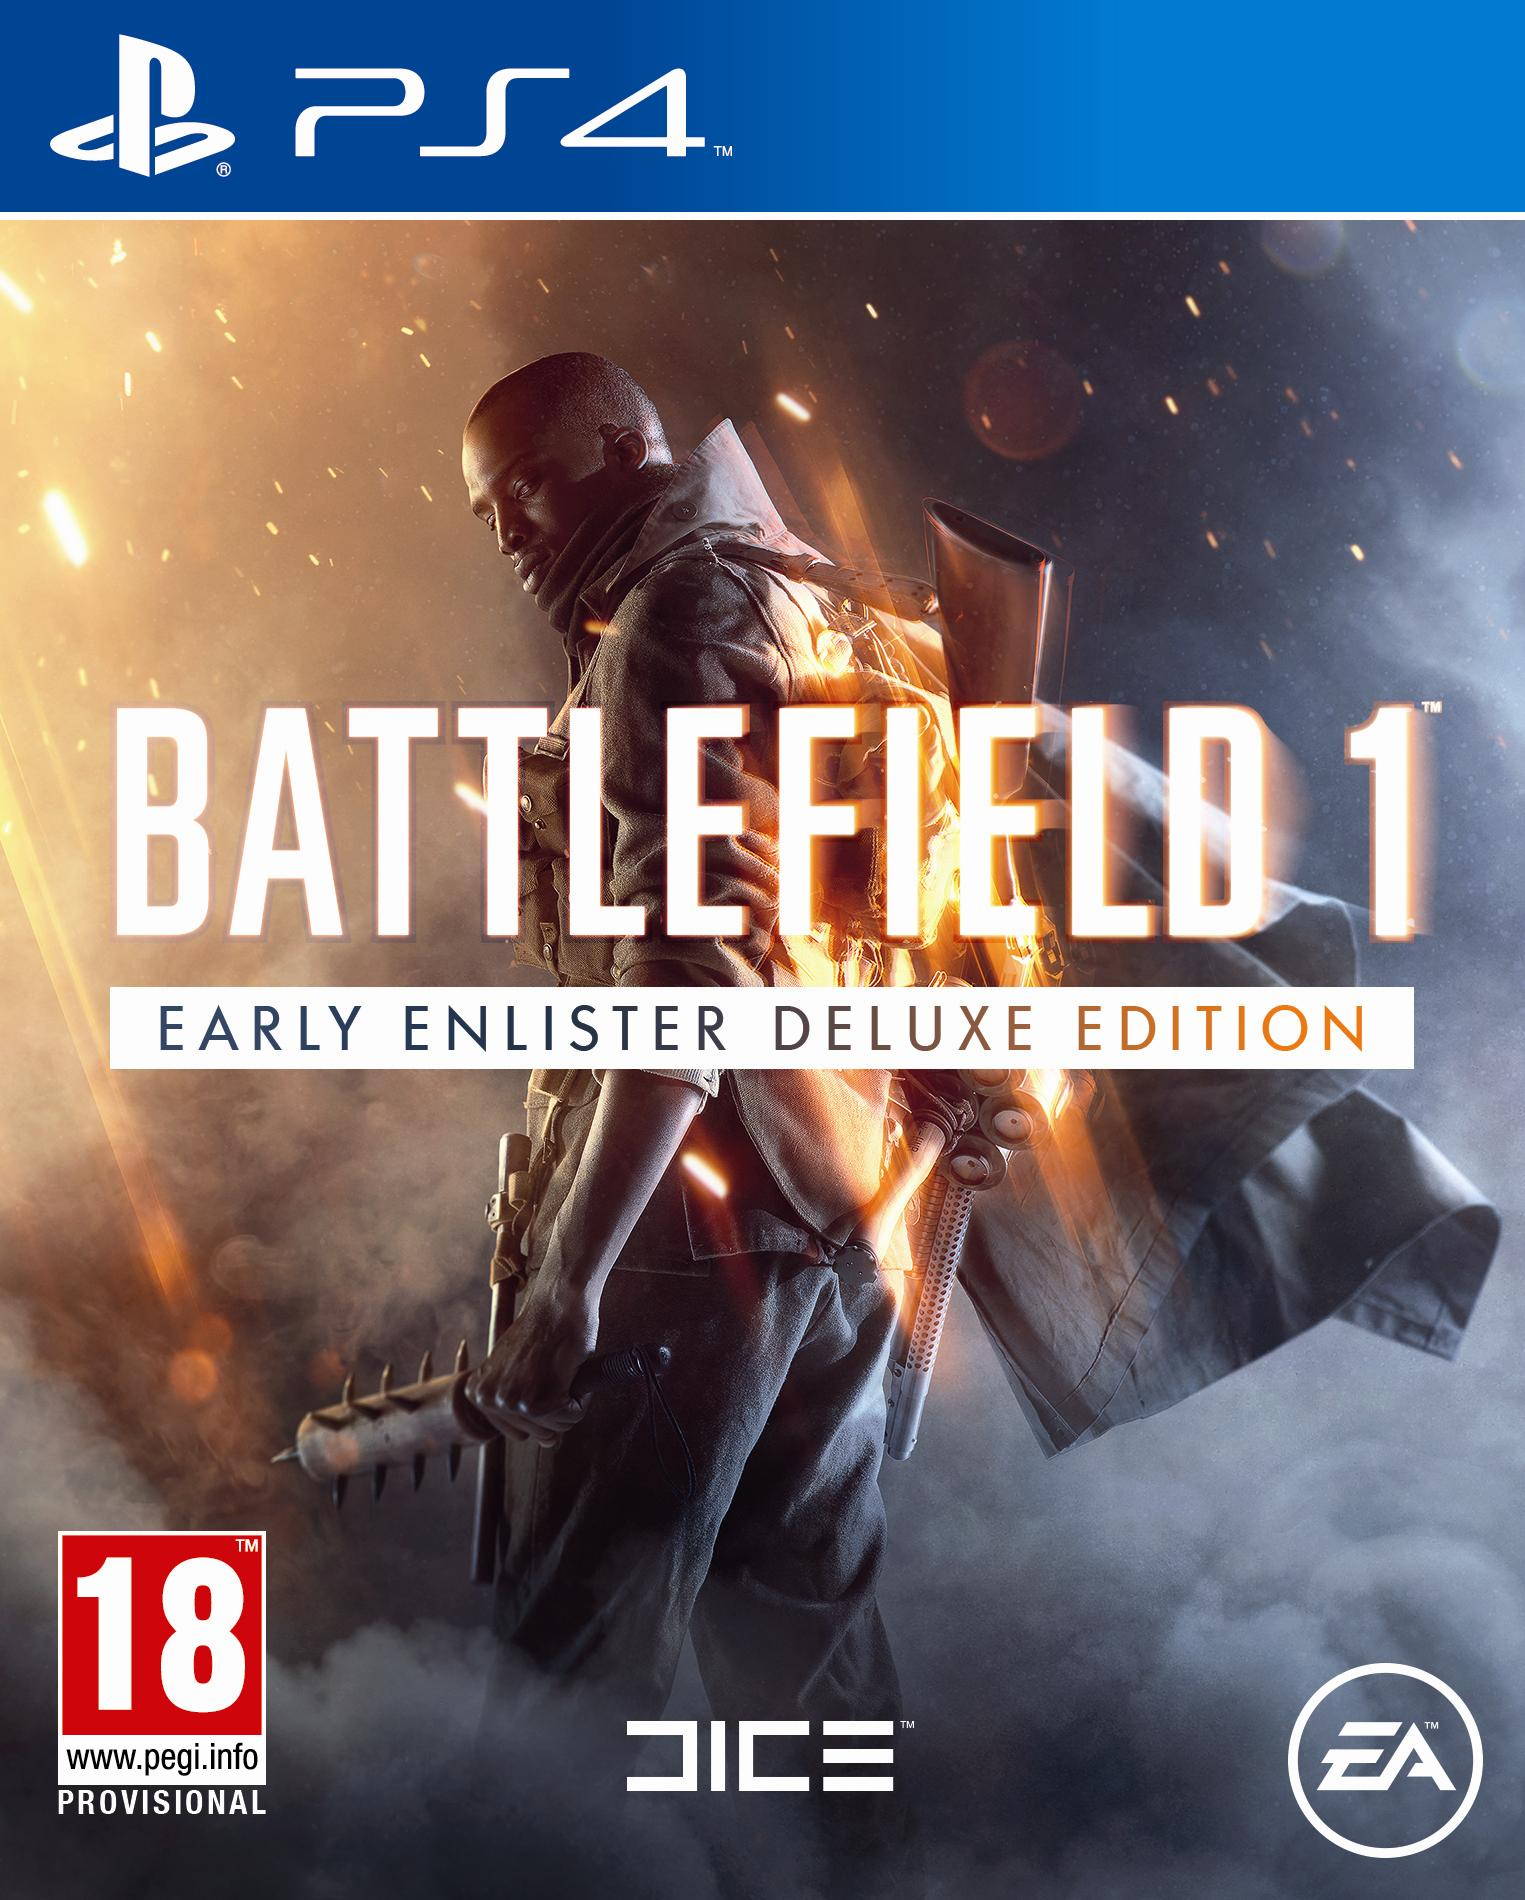 https://img5.downloadha.com/hosein/files/2018/06/Battlefield-1-ps4-cover-large.jpg